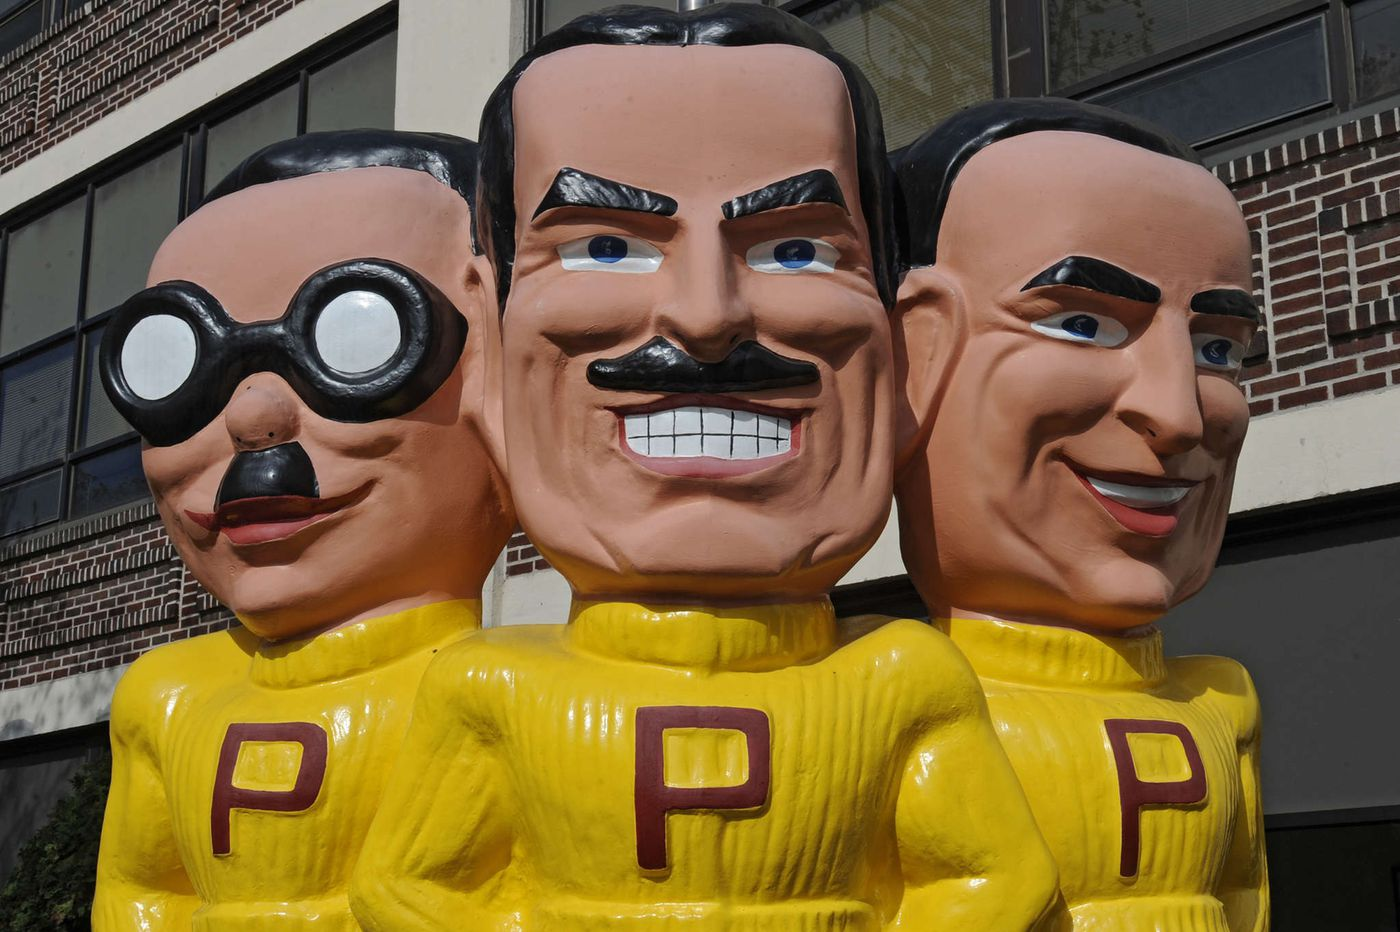 Offering $863 million, Icahn makes a play for Pep Boys